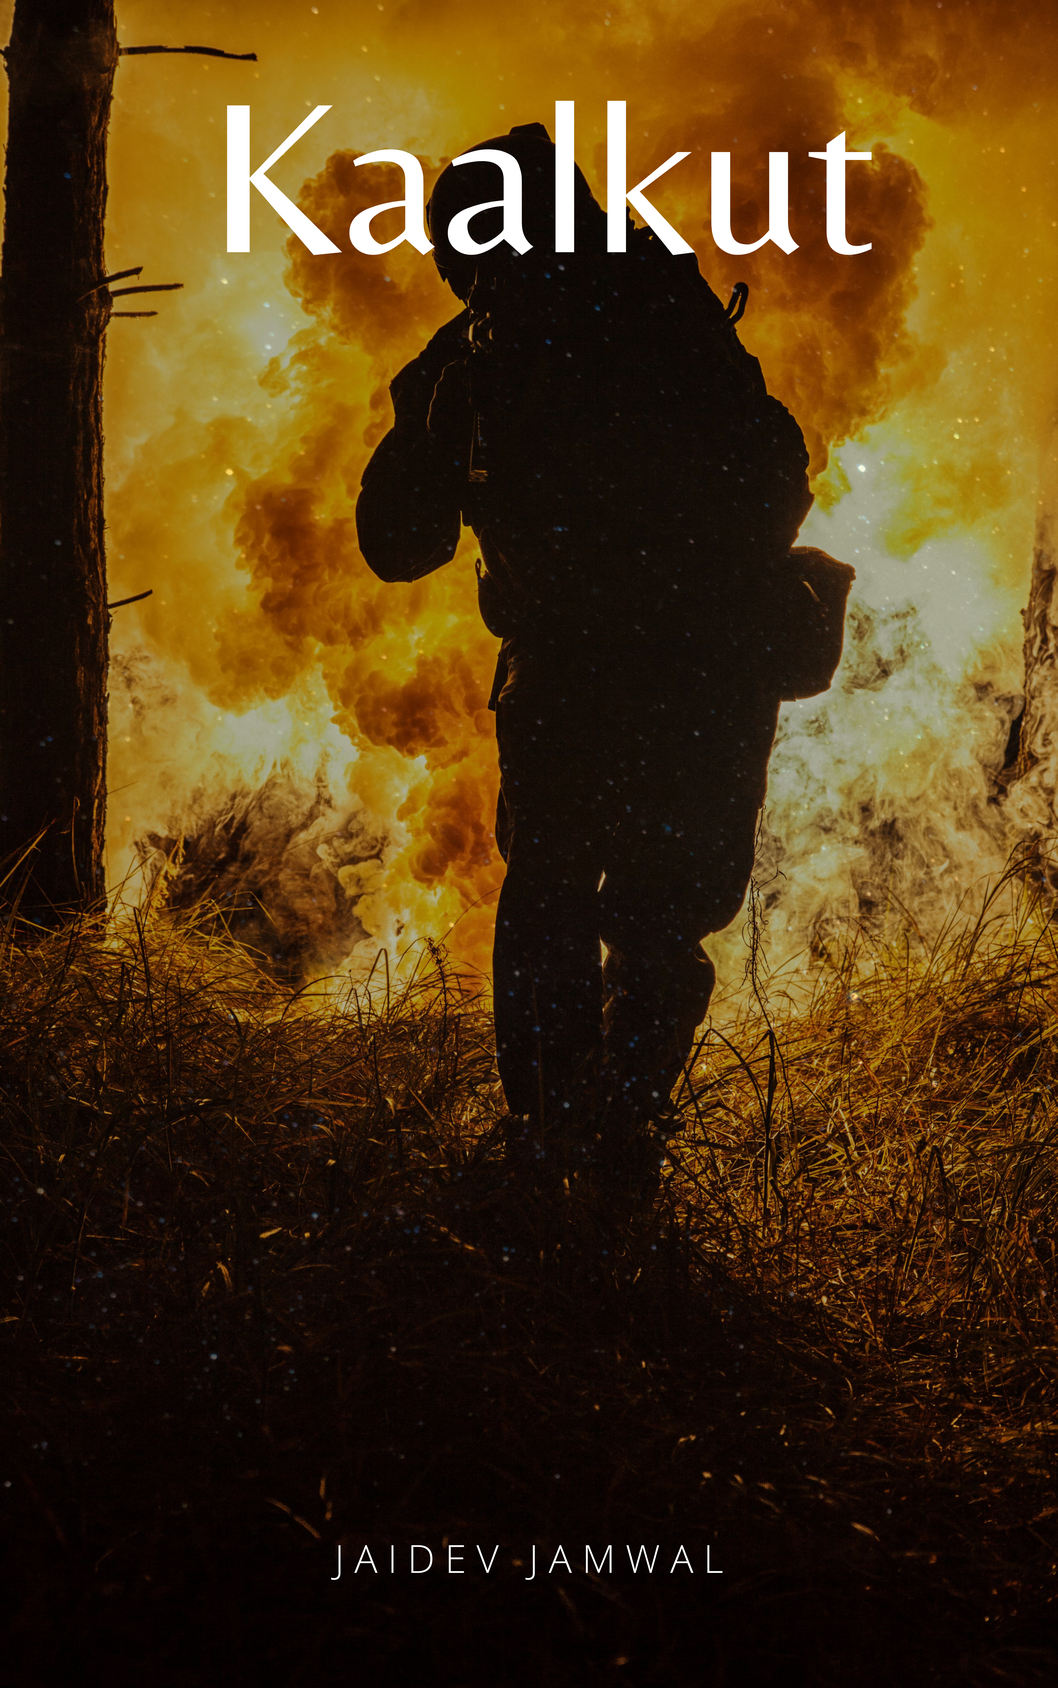 Kaalkut military thriller book cover